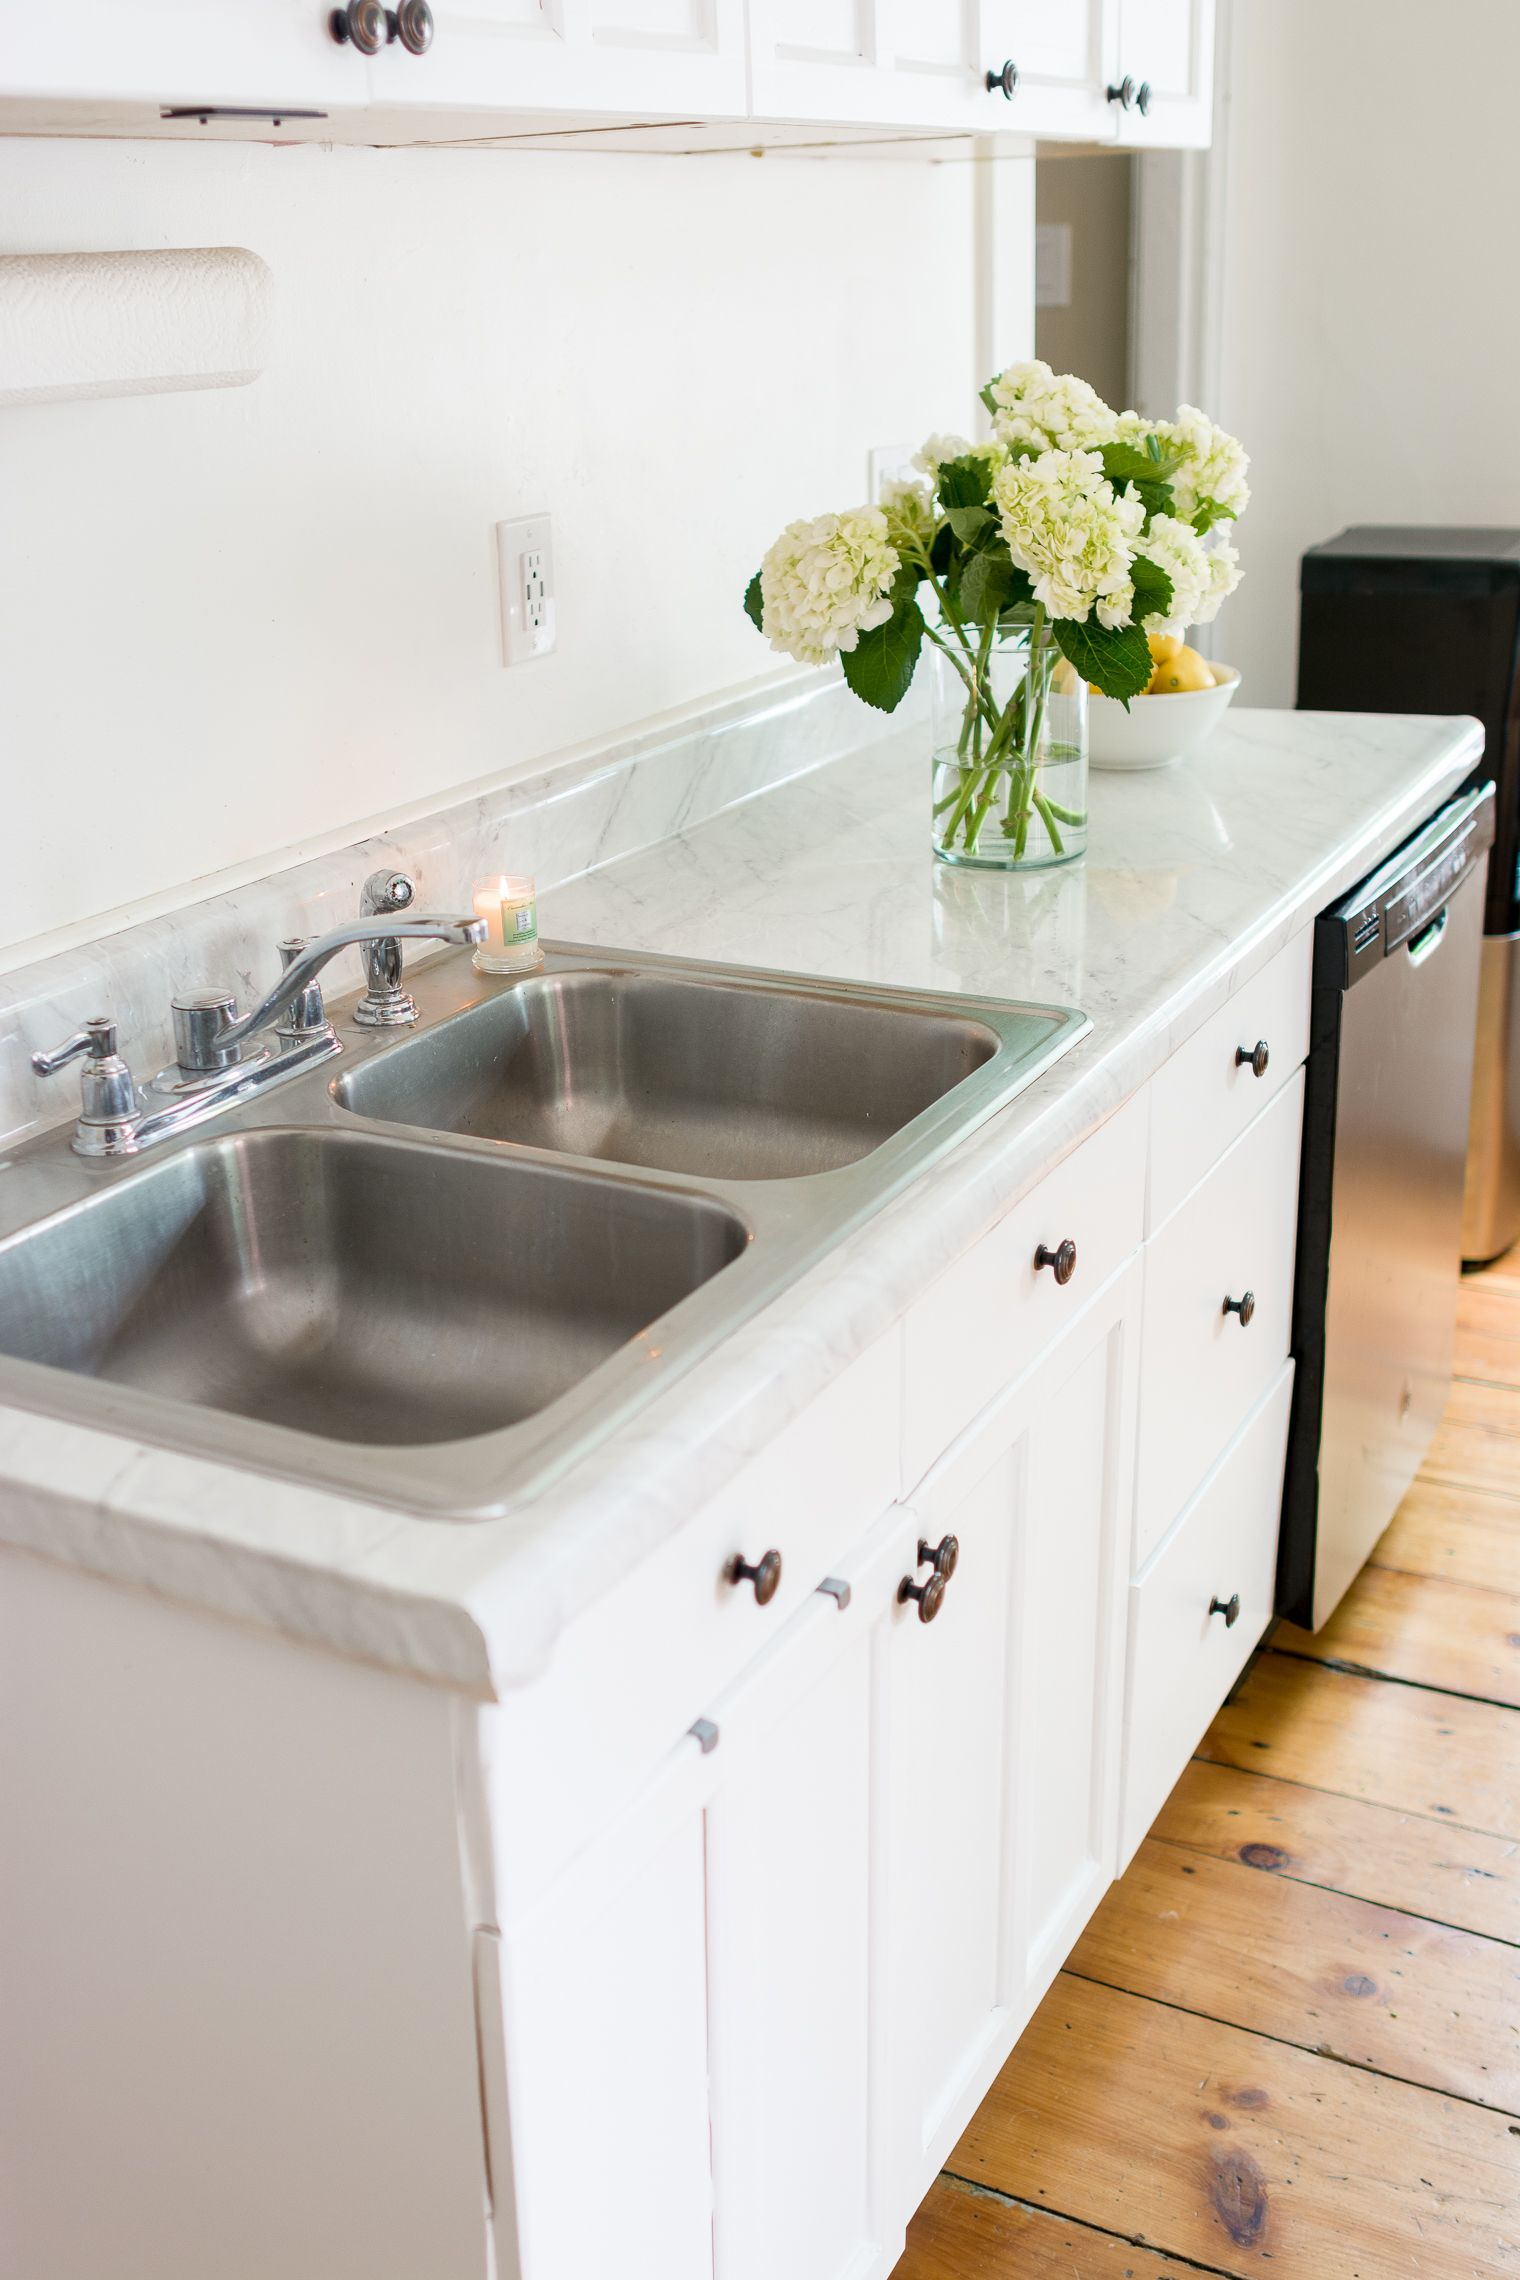 How To Make Over A Kitchen With Contact Paper Covering Cabinets Countertops And Appliances Kitchen Cabinets Cover Contact Paper Kitchen Cabinets Contact Paper Countertop